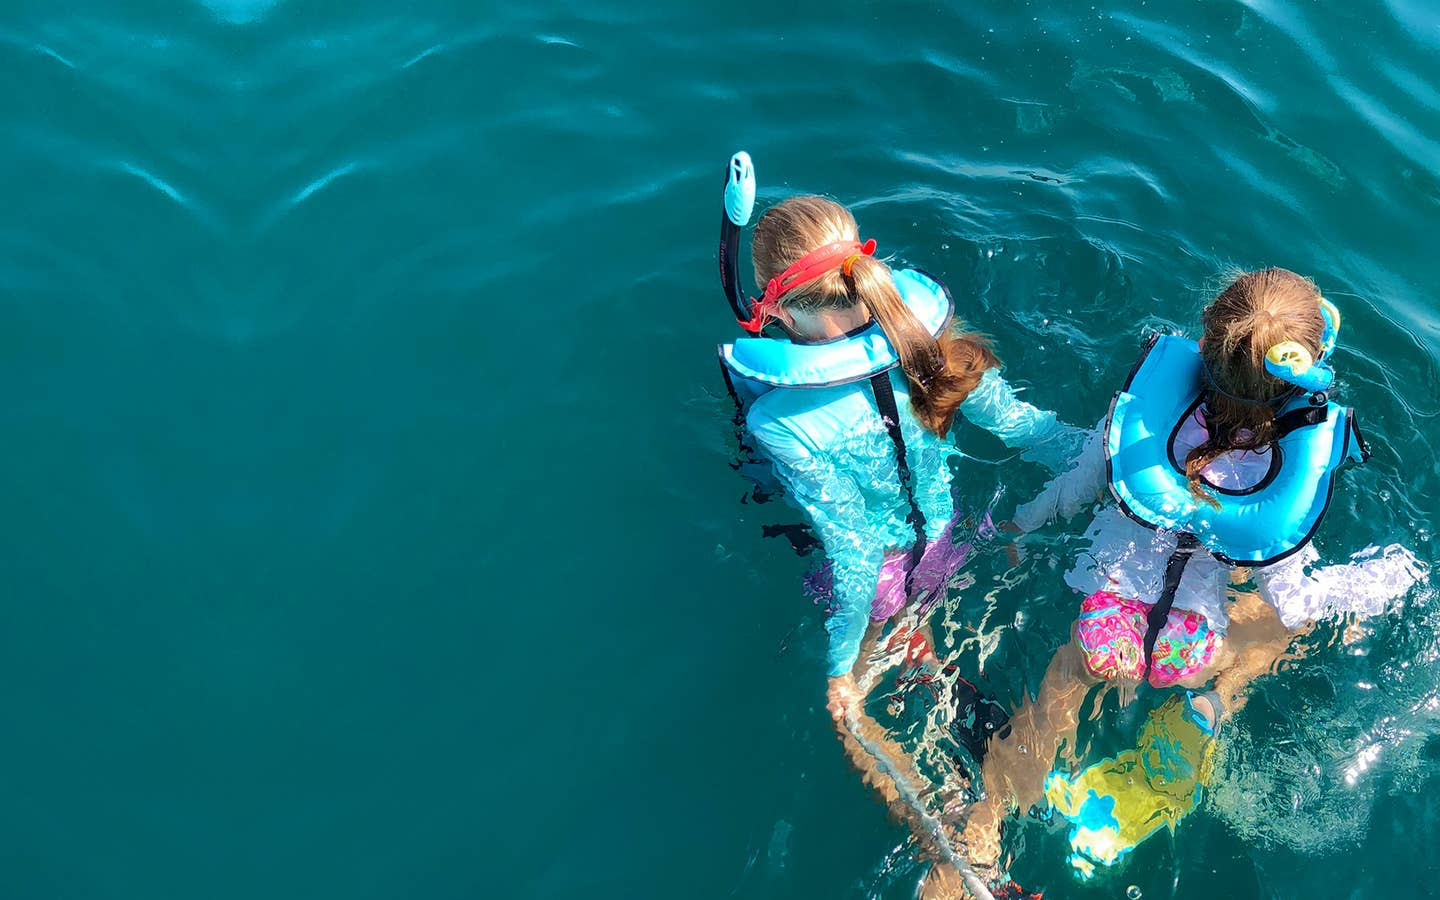 Featured Contributor, Chris Johnston's two daughters, Kyler (right) and Kyndall (left), wear multi-colored snorkel gear while holding onto a rope in the ocean.